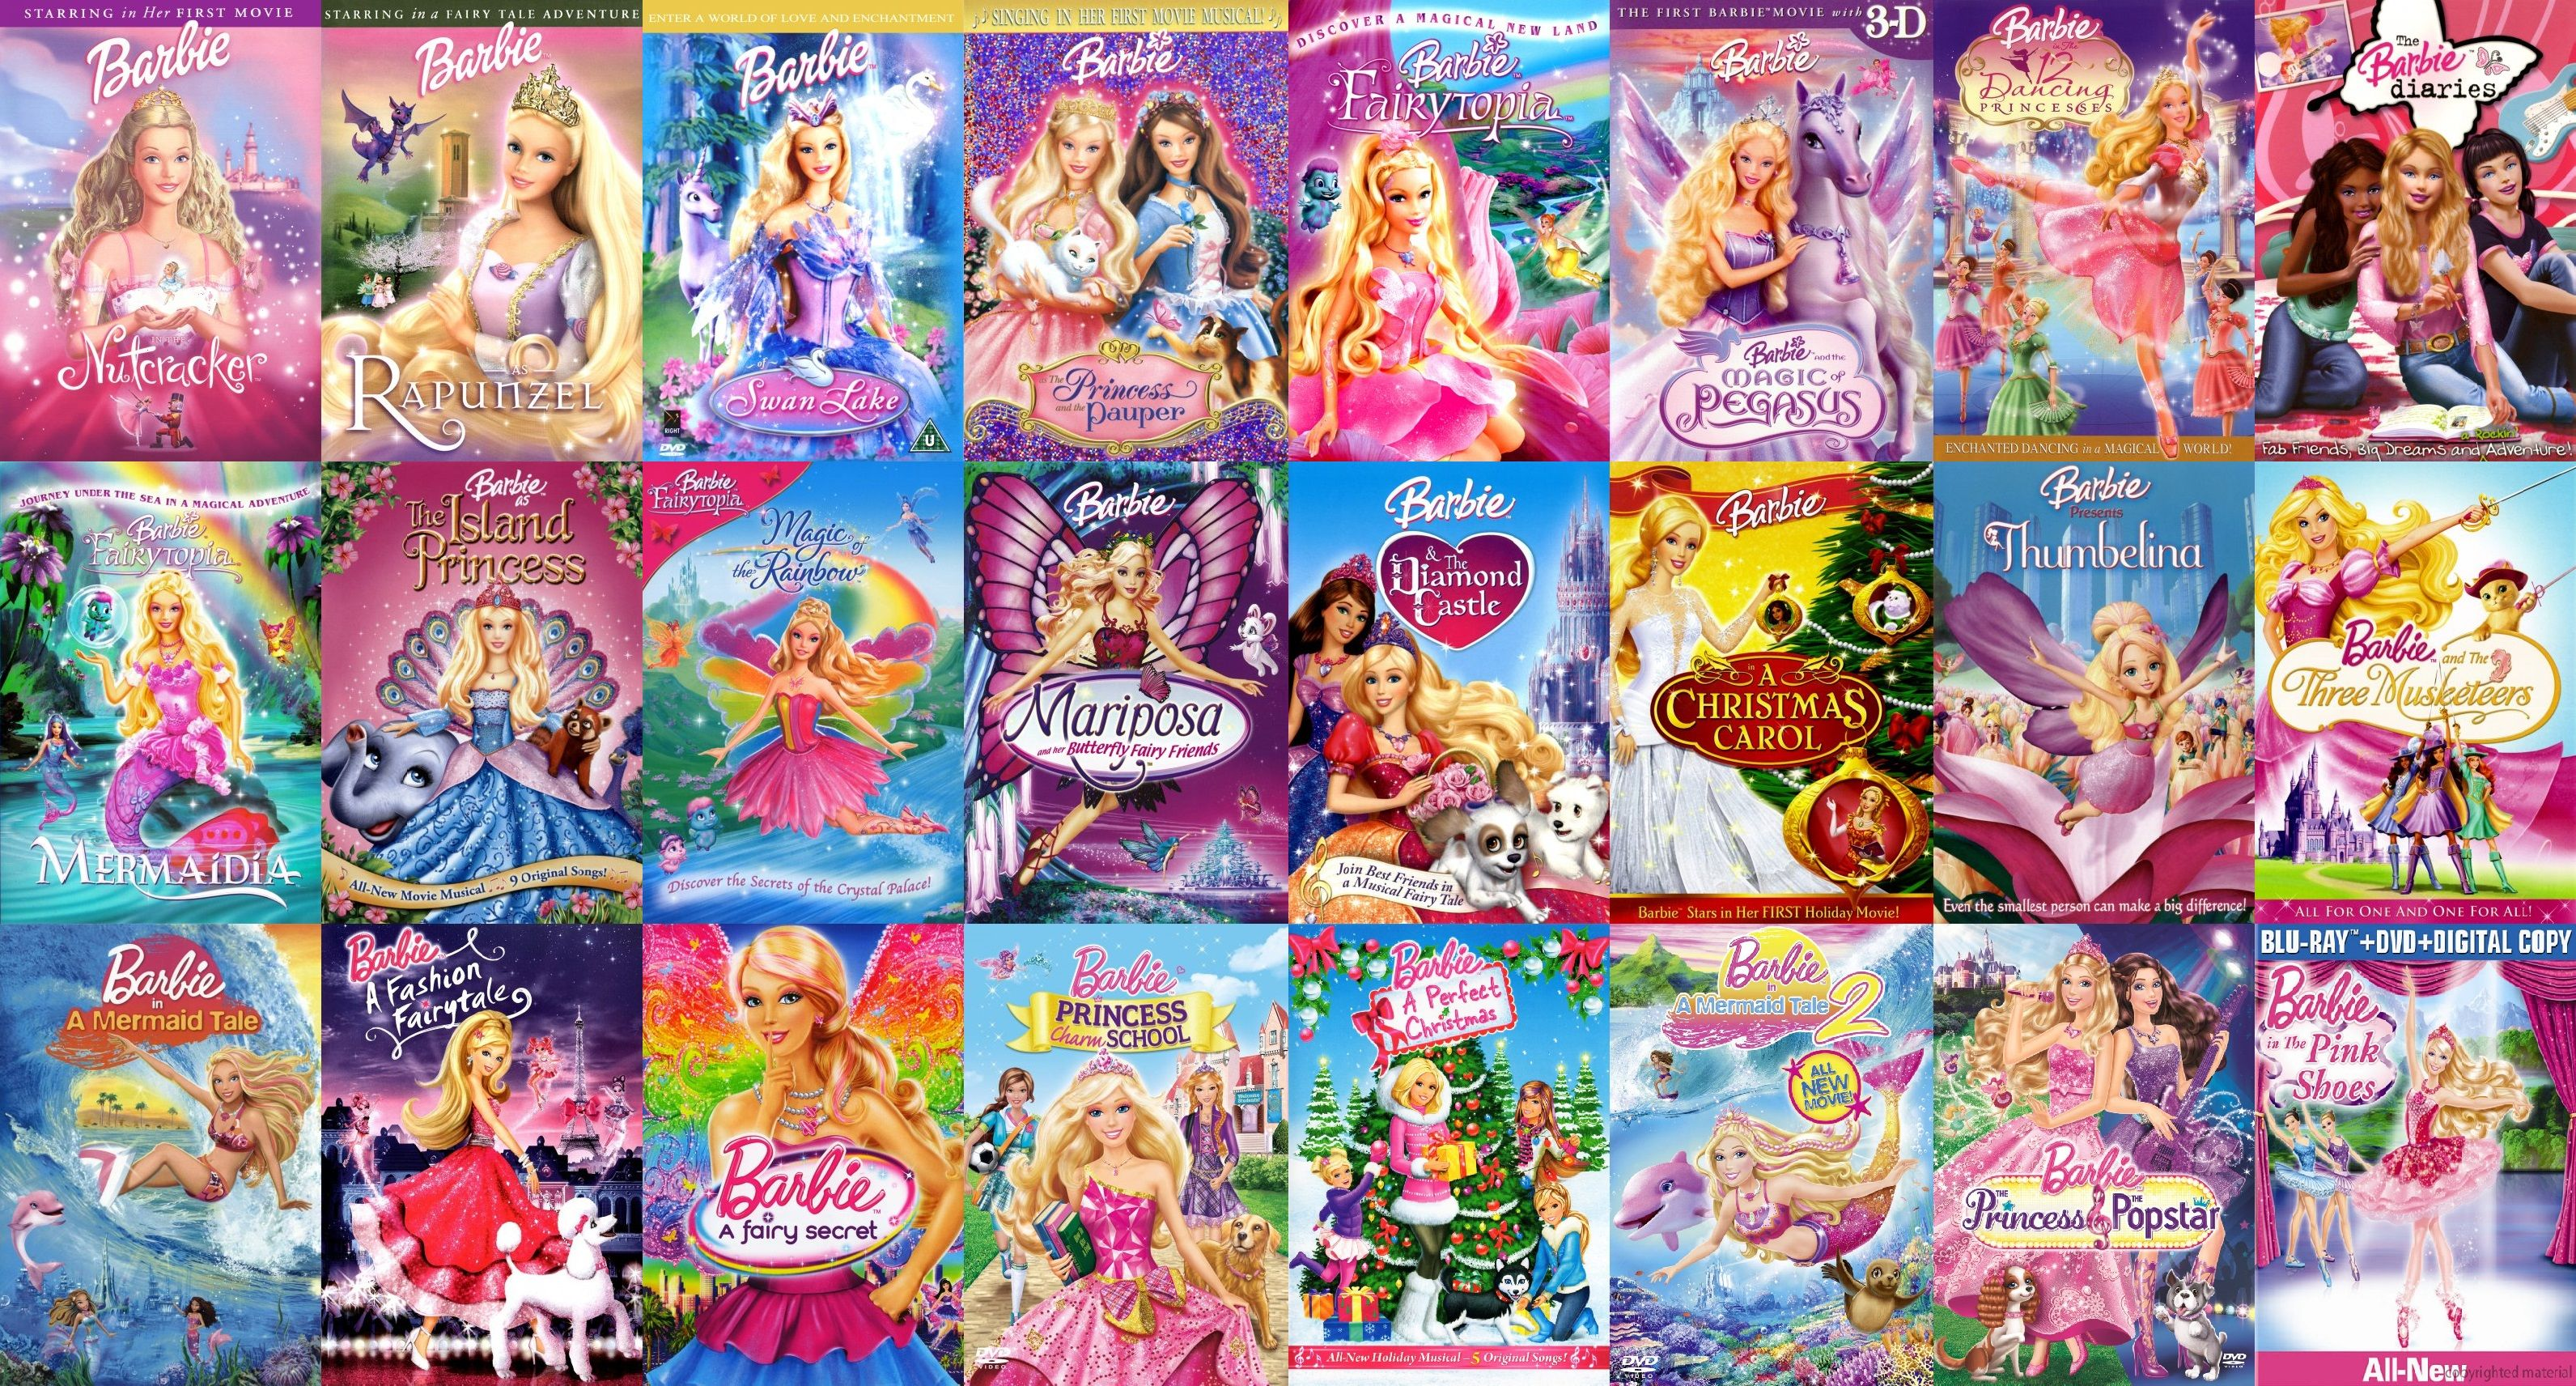 All Barbie Movies Barbie Movies 33033478 3183 1712 Jpg 3183 1712